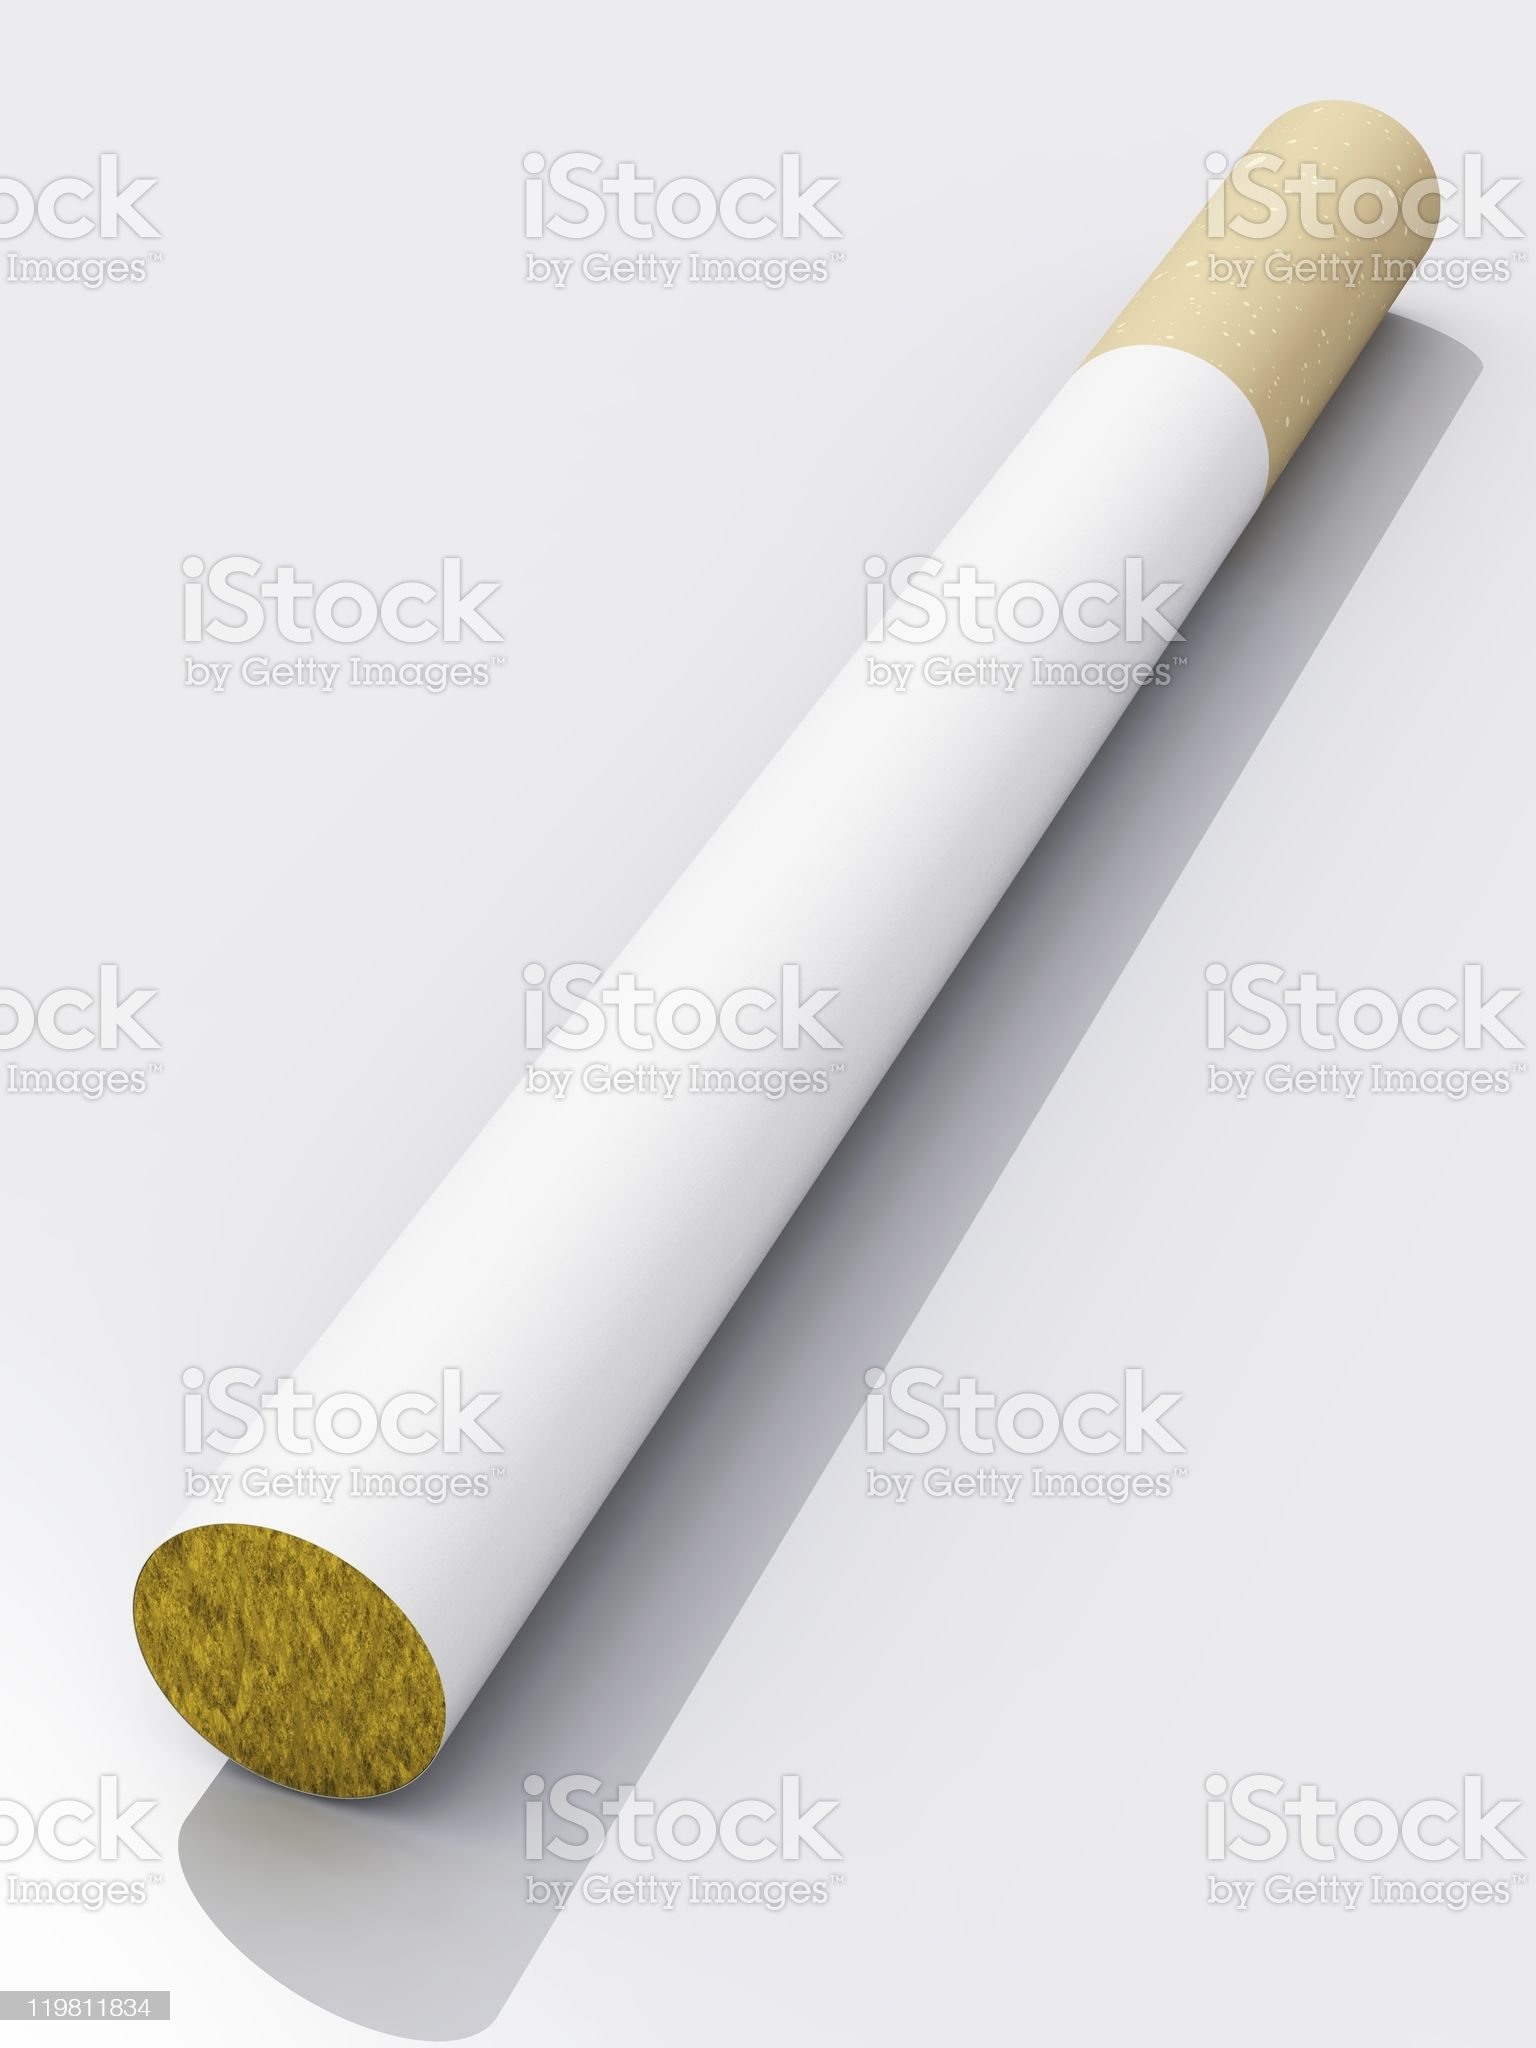 Filter tip cigarette royalty-free stock photo